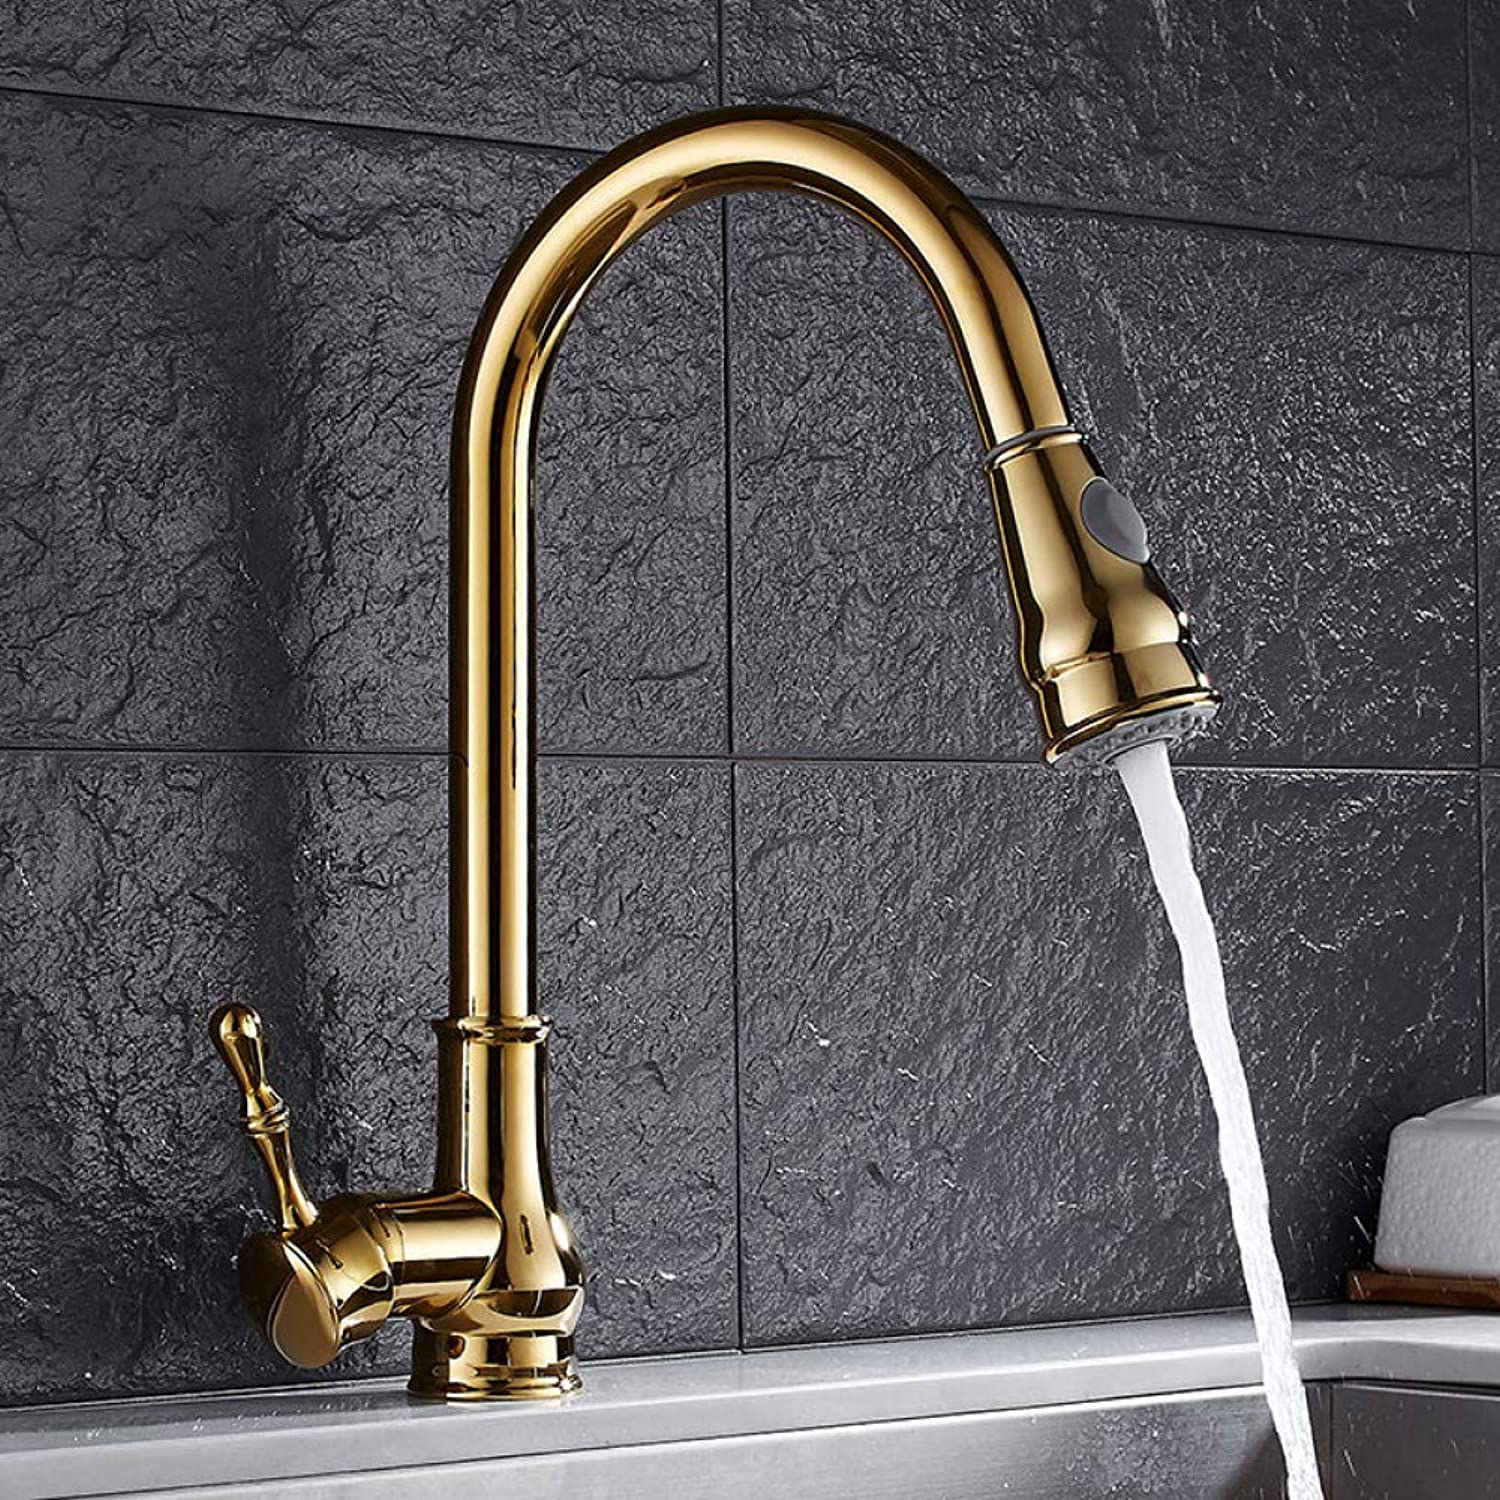 YHSGY Kitchen Taps Copper golden European Kitchen Single Handle Faucet Pull-Type Sink Hot and Cold Water Faucet 360 redation